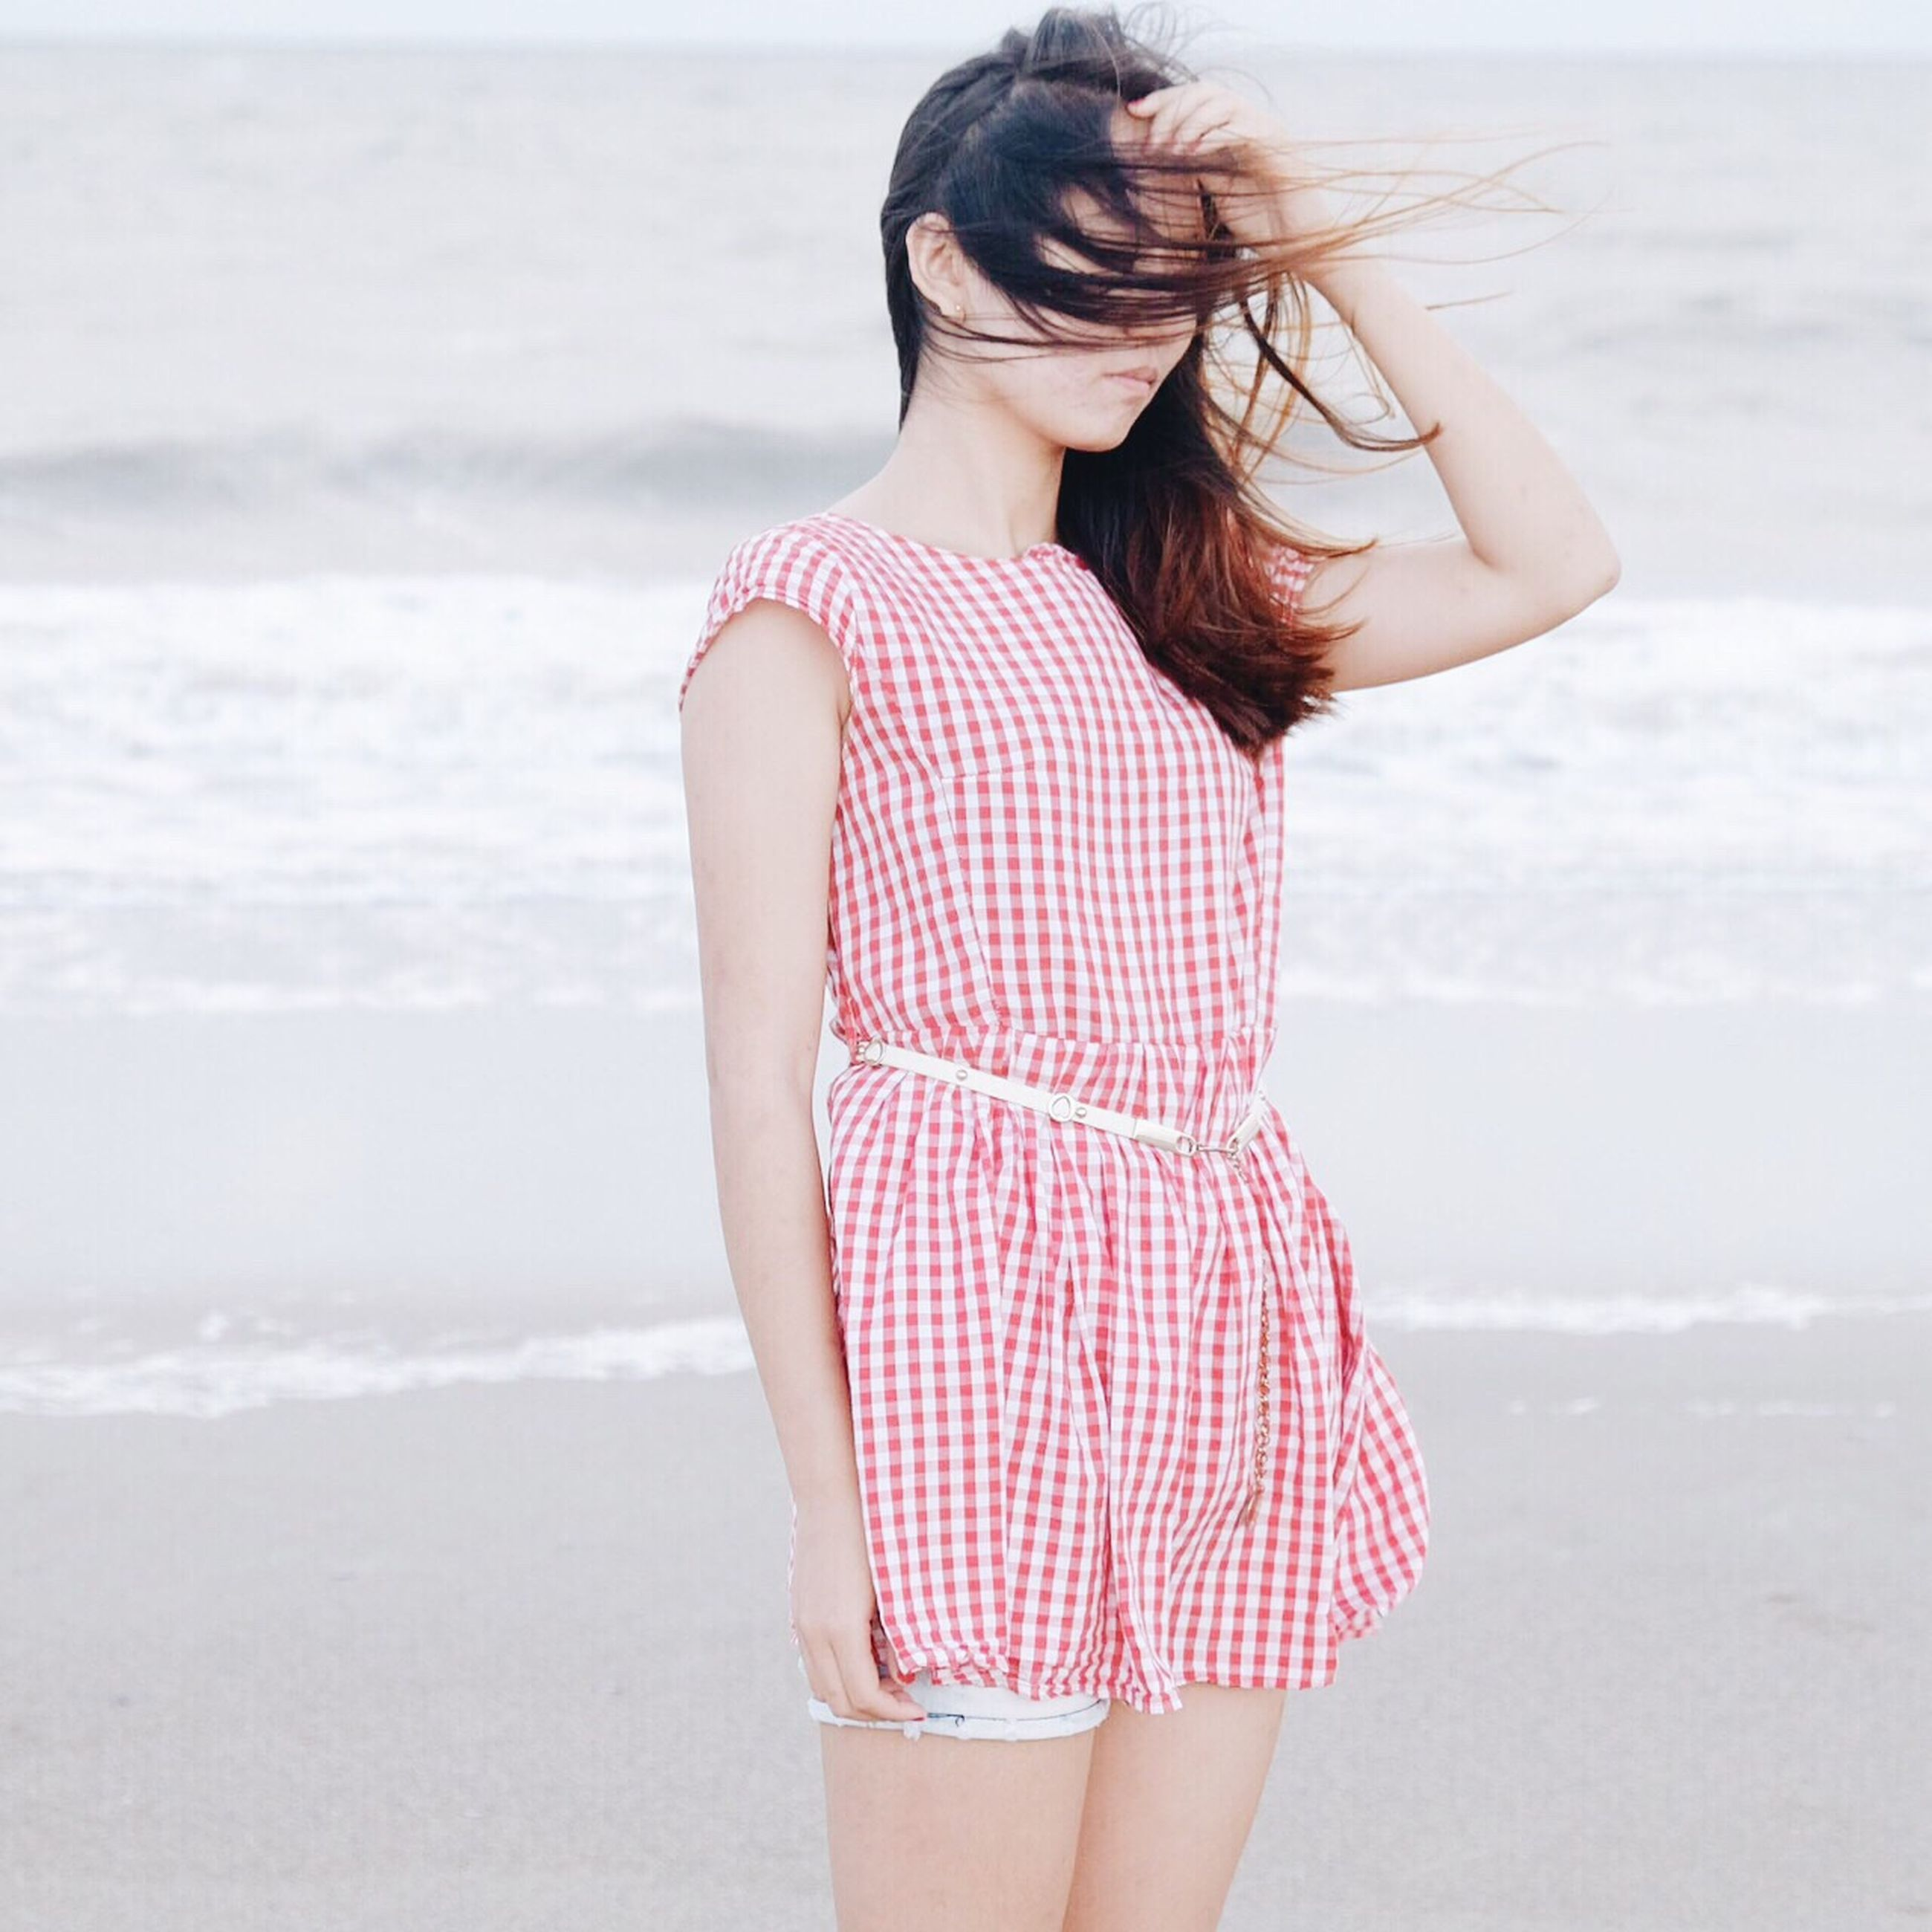 young women, young adult, lifestyles, sensuality, standing, leisure activity, long hair, sea, beach, person, three quarter length, beauty, casual clothing, dress, femininity, water